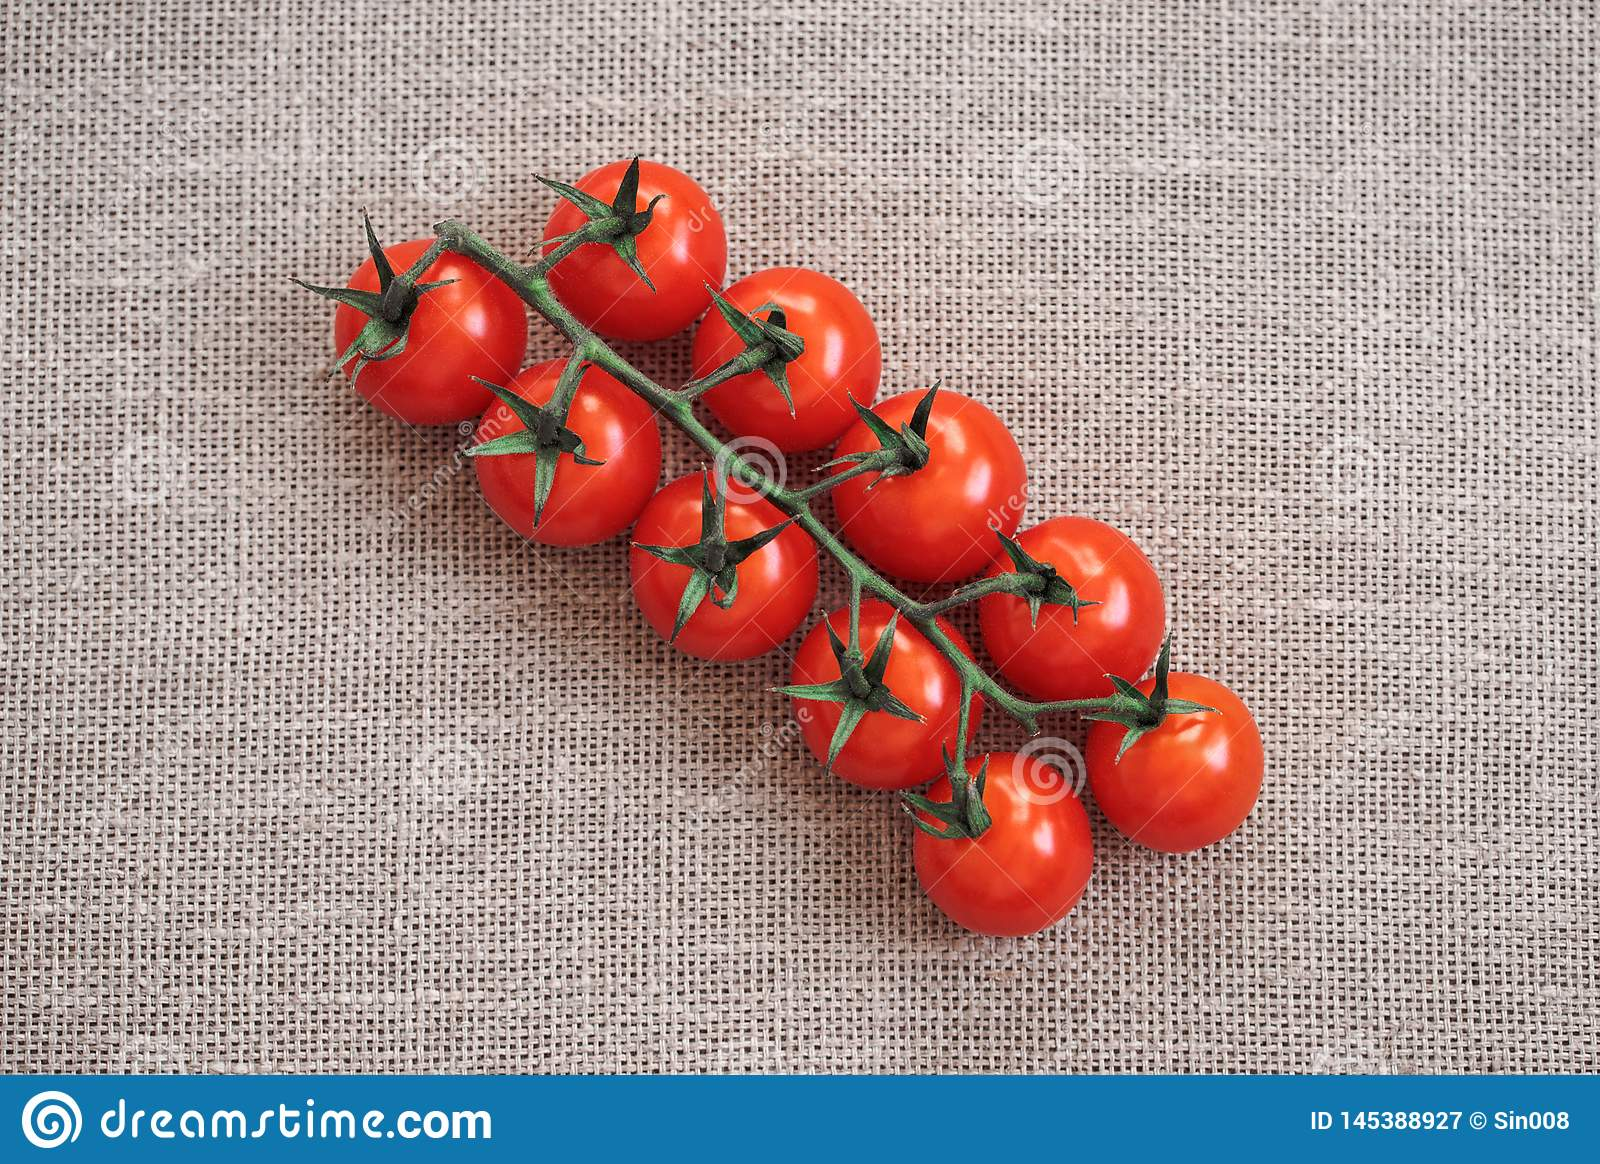 Red tomato on beige background. Cherry tomato on a green branch is on the burlap. The view from the top